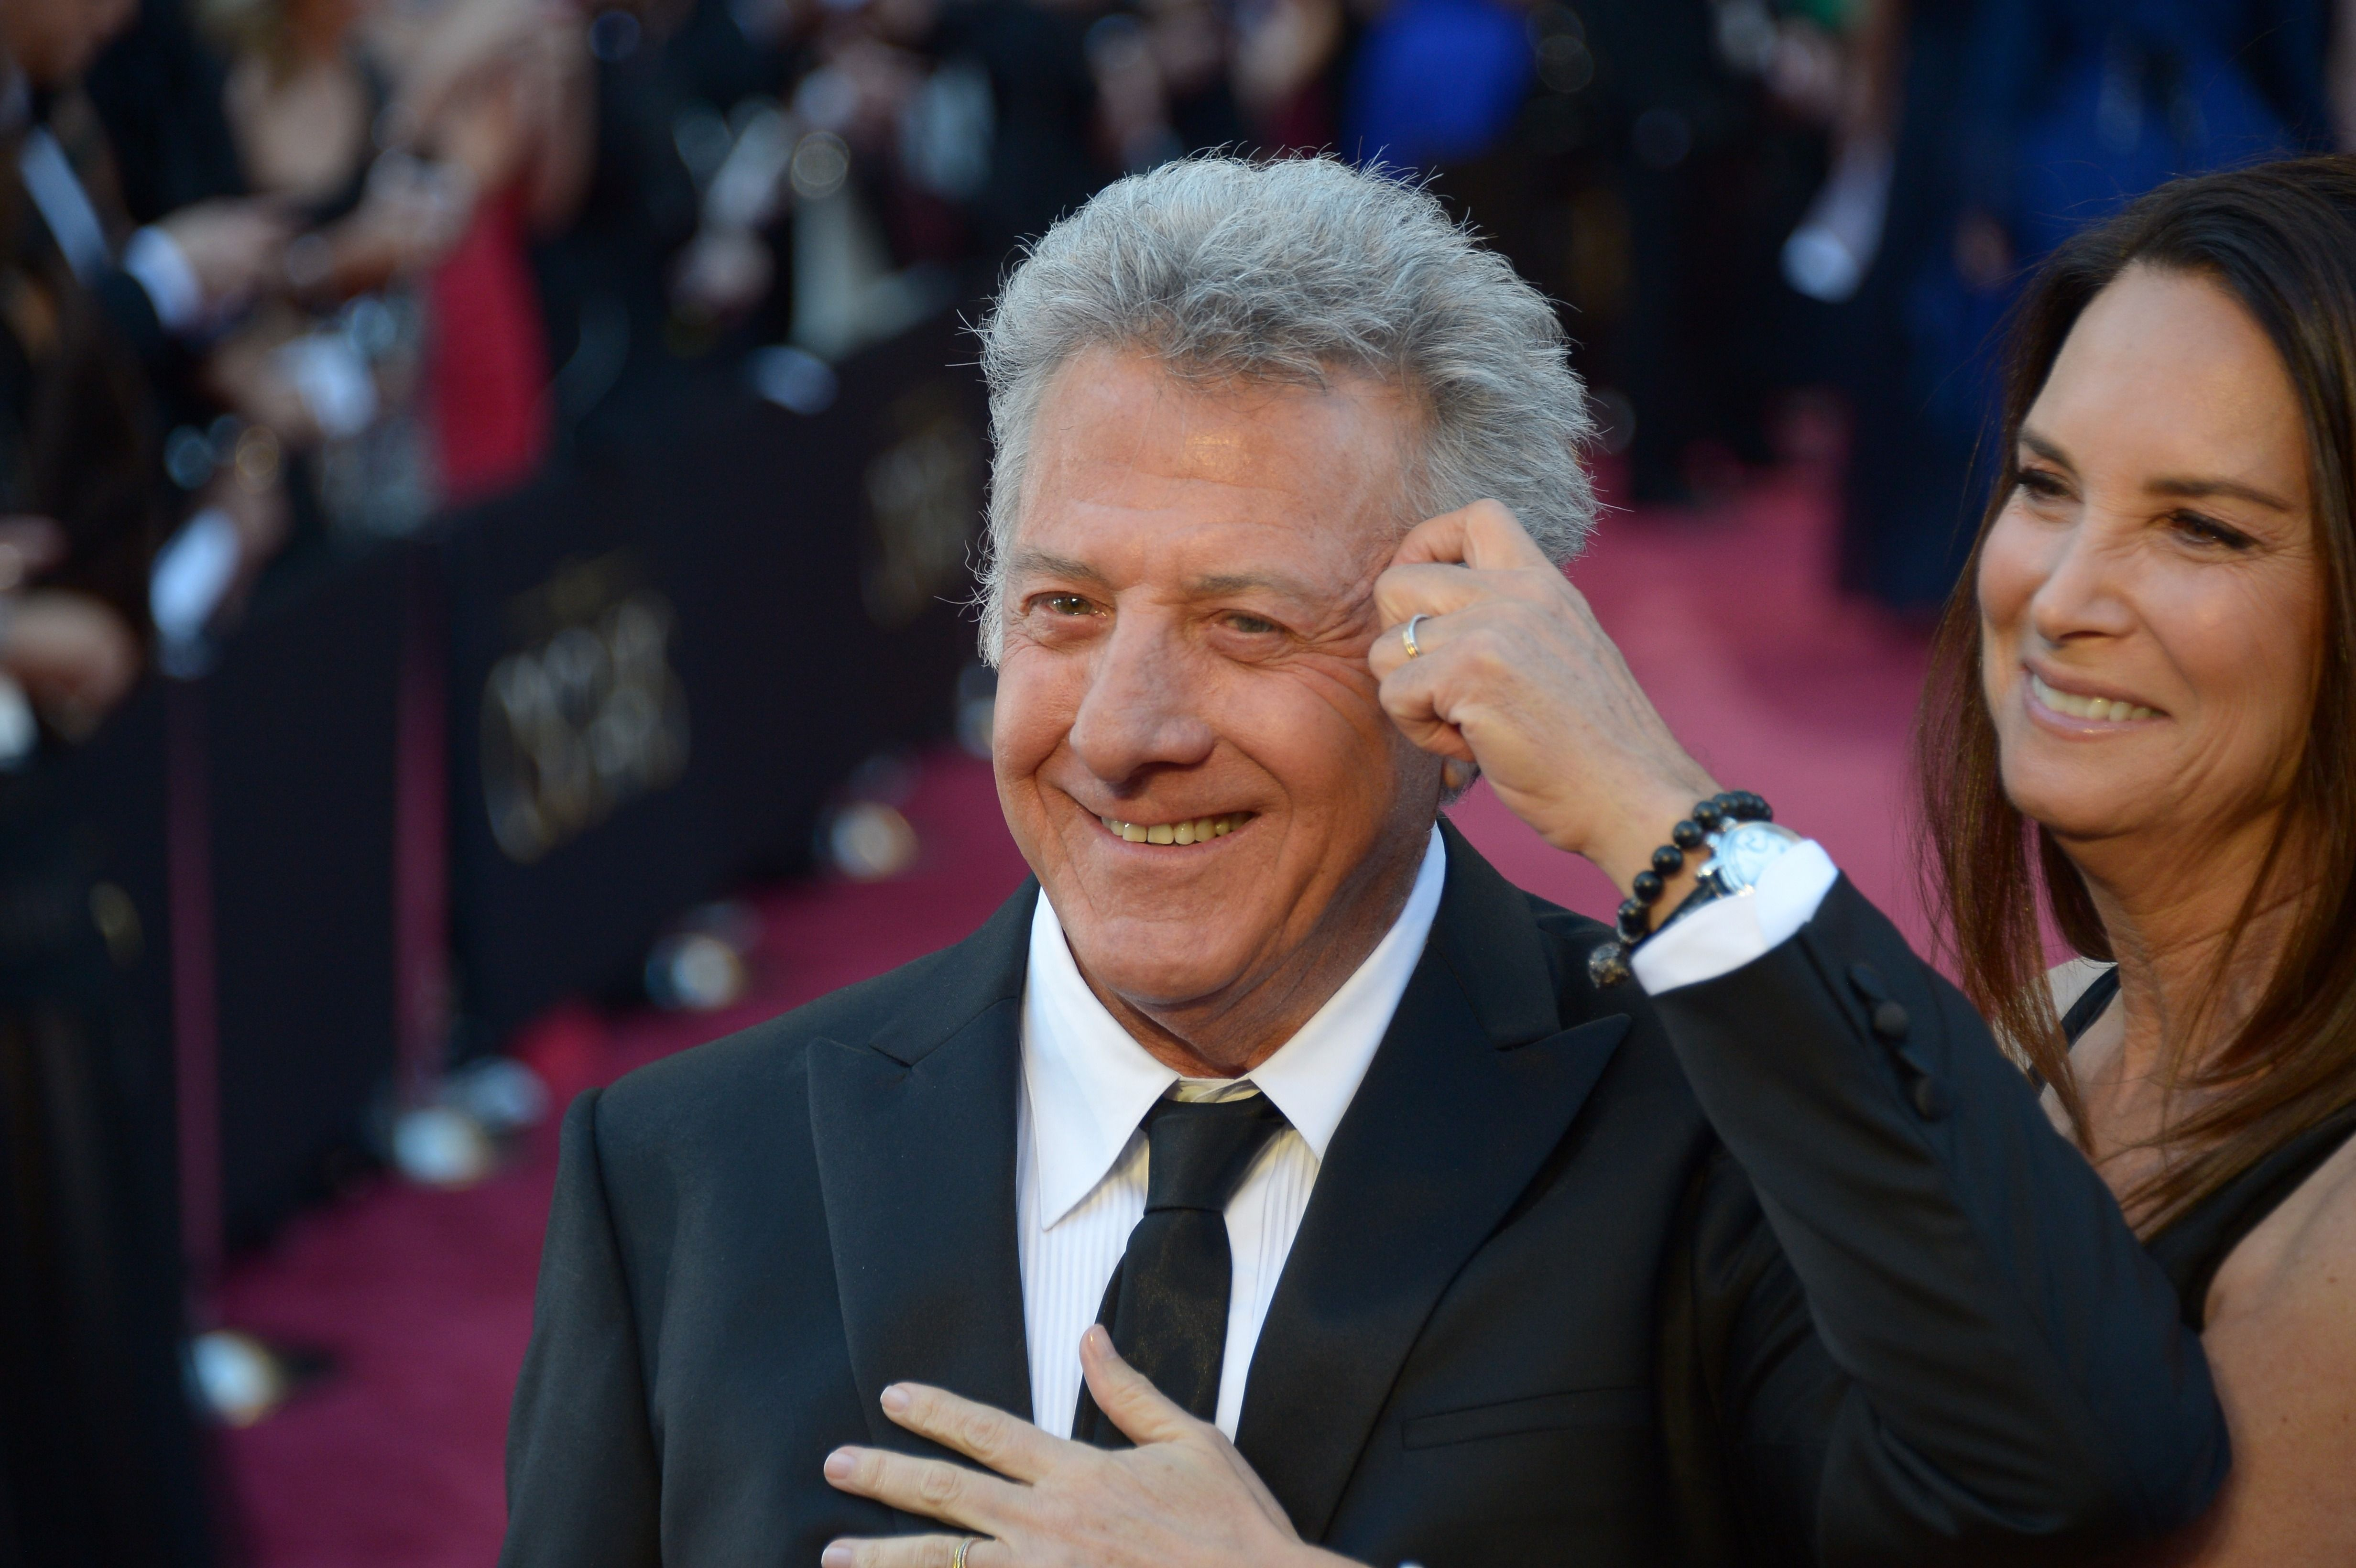 Dustin Hoffman and the unsung hero of the event, Lisa Hoffman